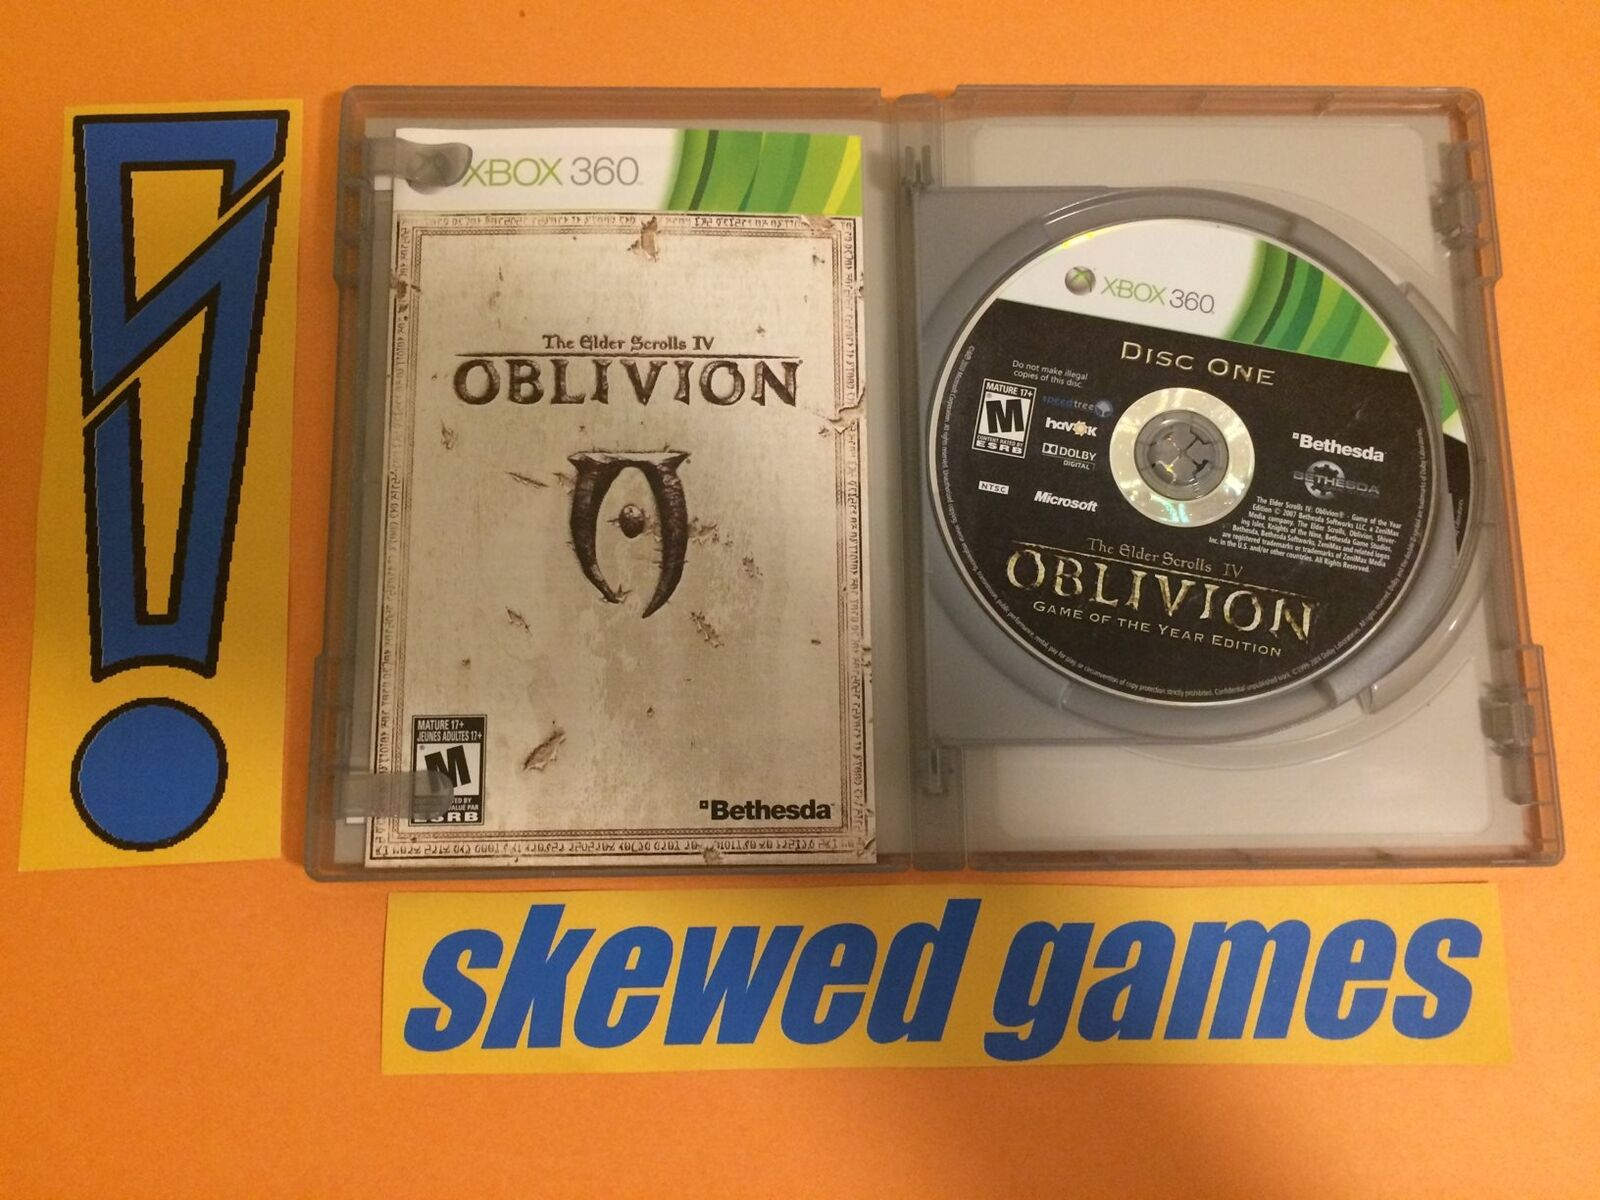 Details about Elder Scrolls IV Oblivion Game of the Year Edition GOTY -  XBox 360 Microsoft